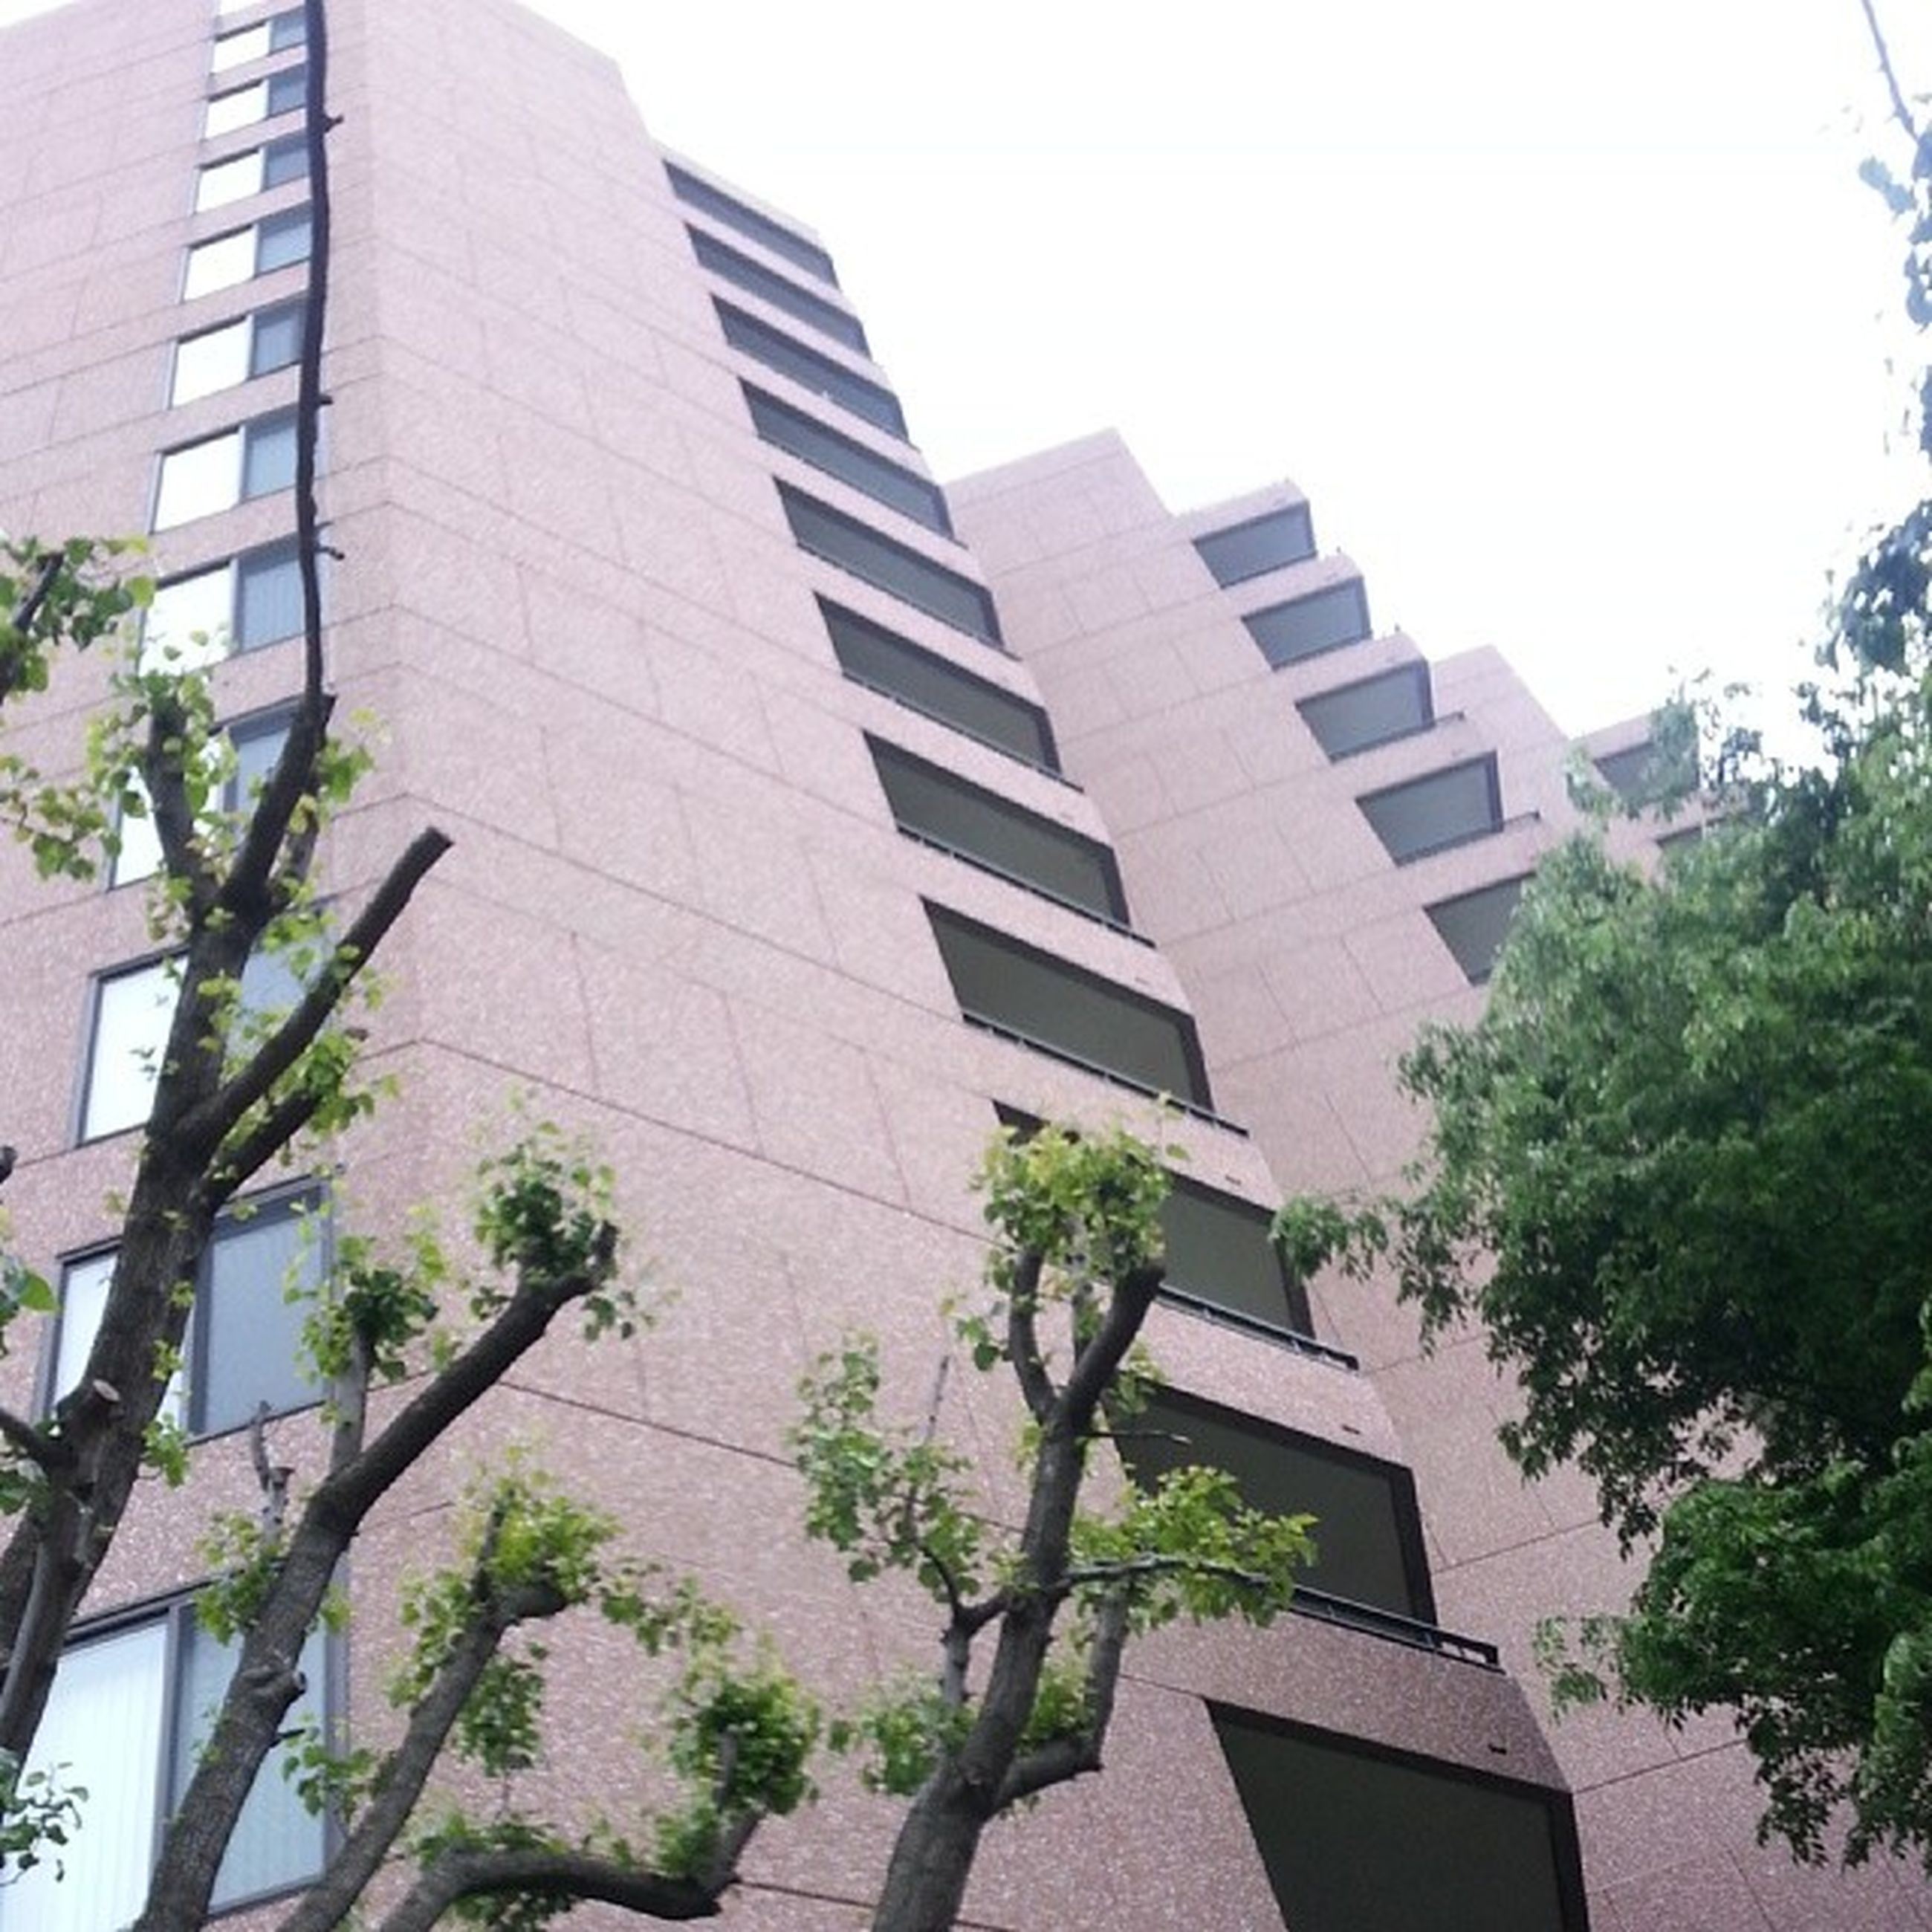 building exterior, architecture, built structure, low angle view, building, clear sky, city, tree, window, residential building, office building, growth, modern, residential structure, day, outdoors, no people, plant, balcony, tall - high